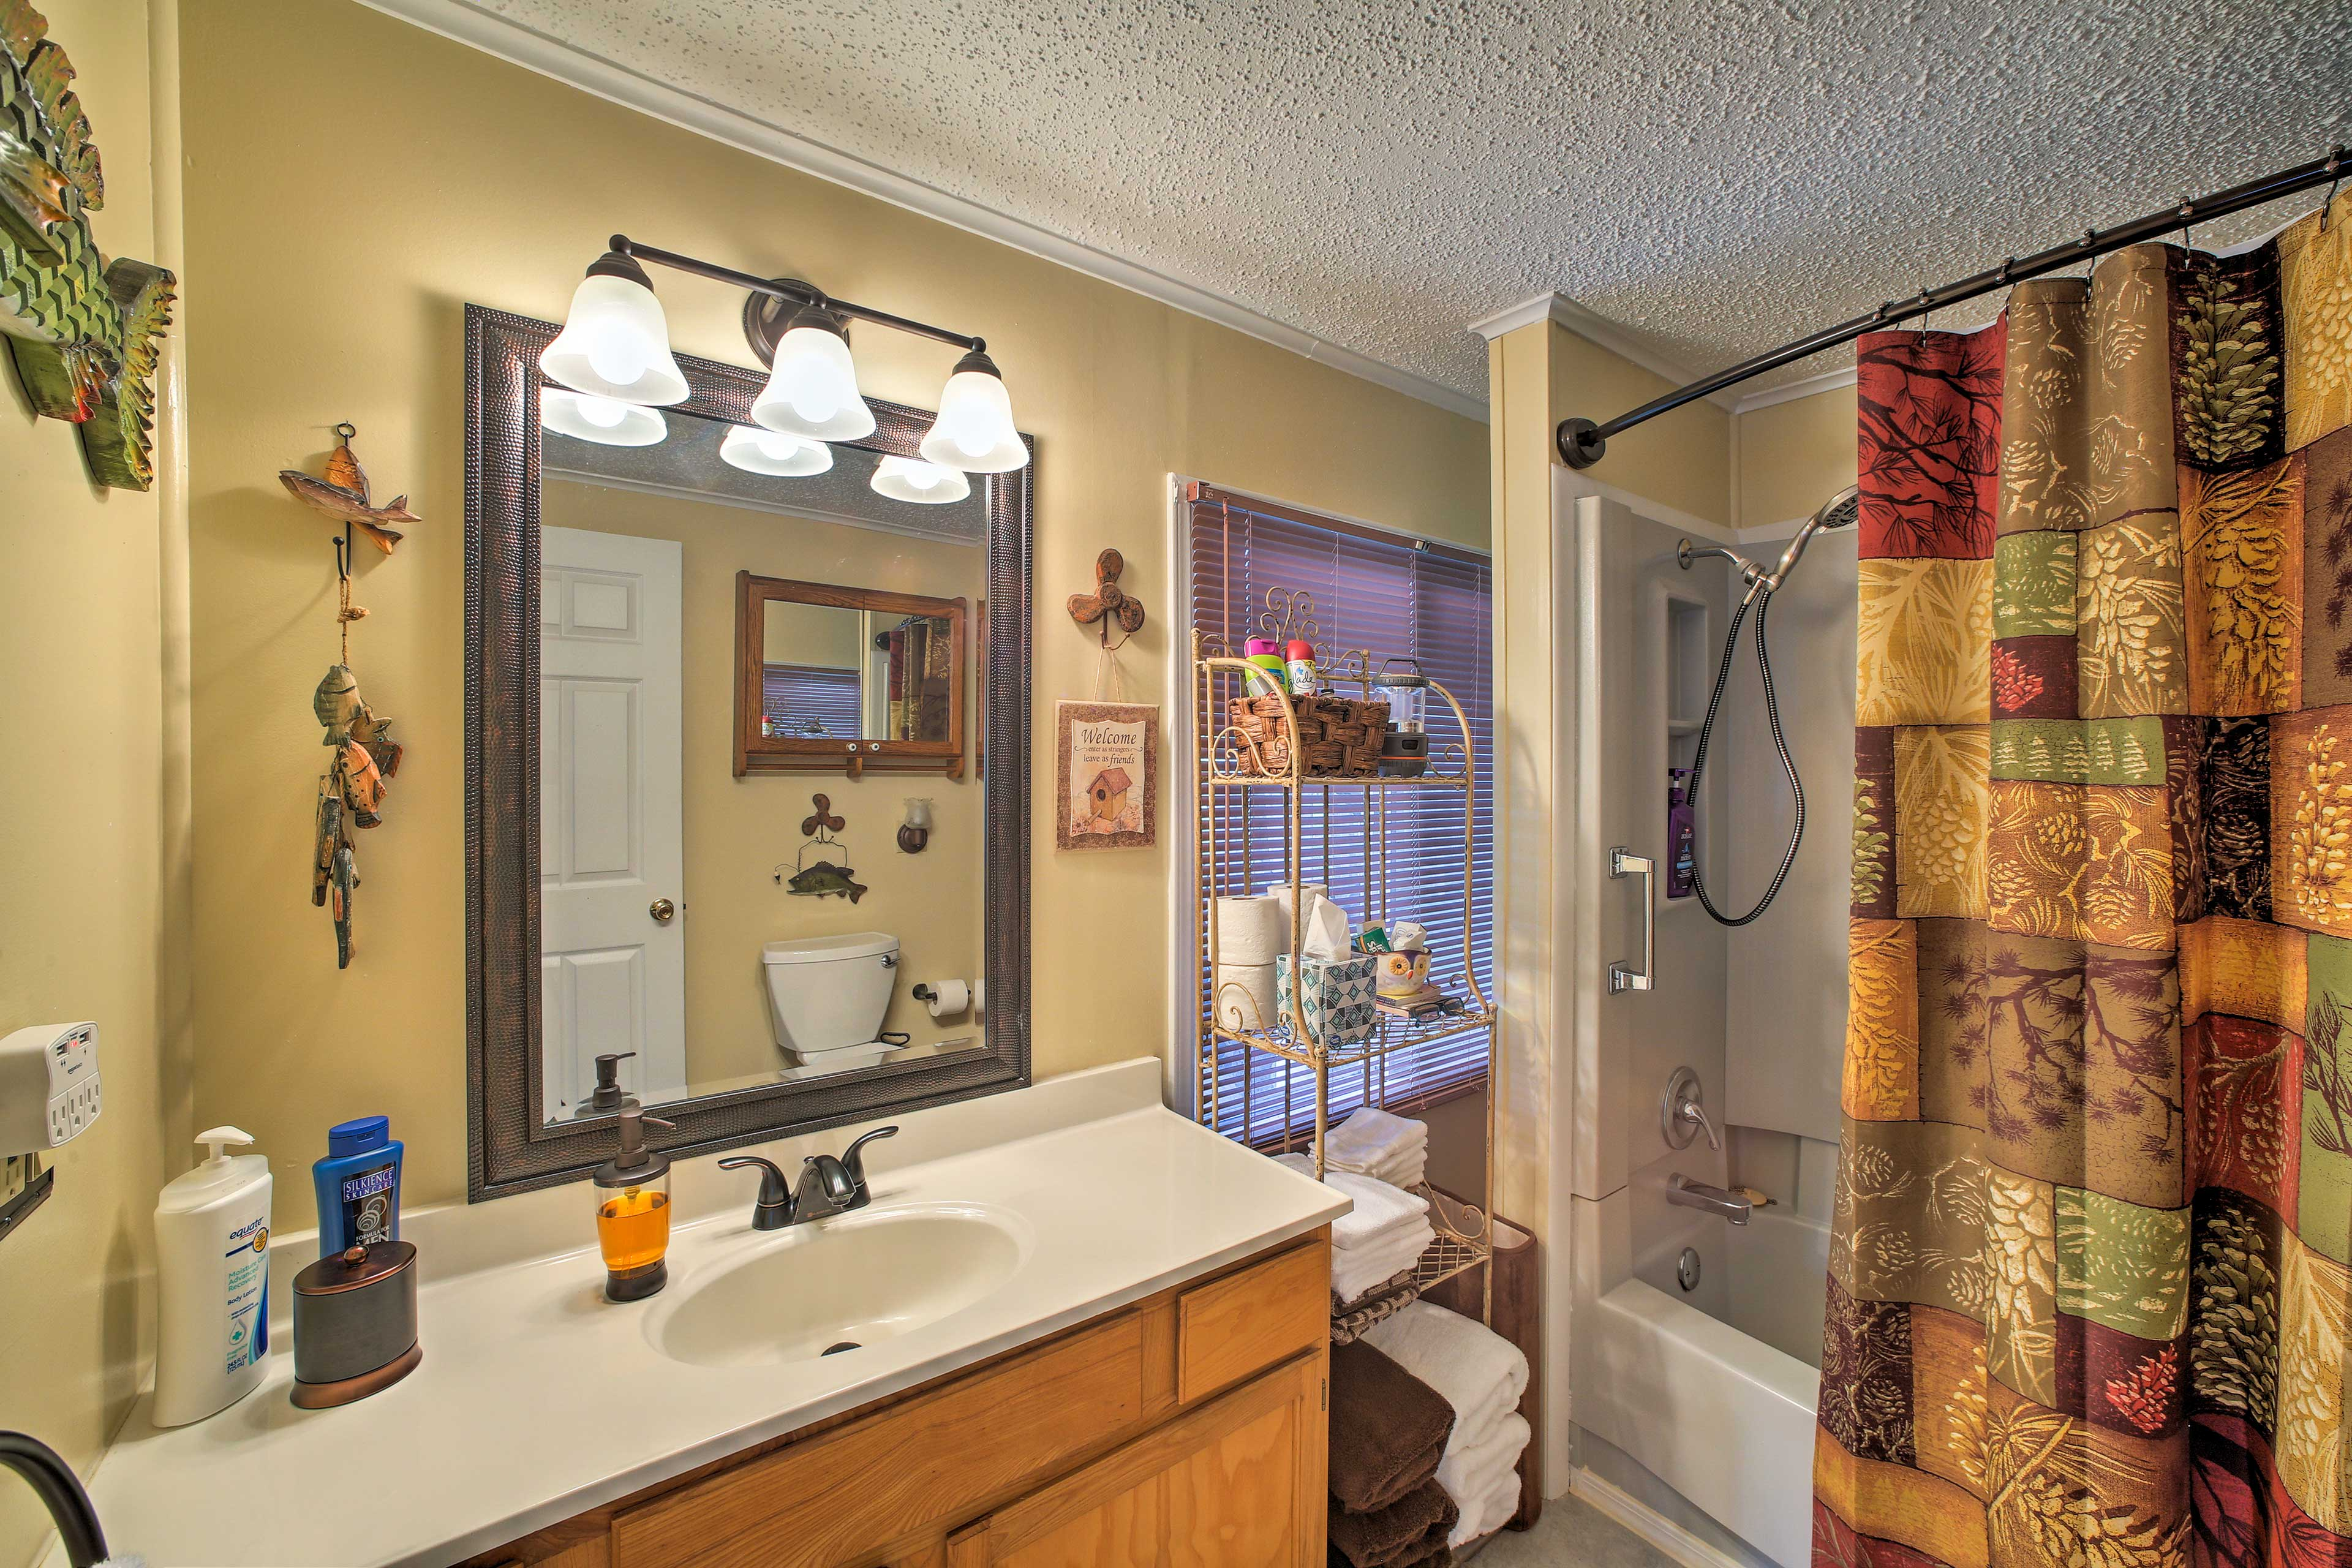 The spacious bathroom offers plenty of room for everyone to get ready.